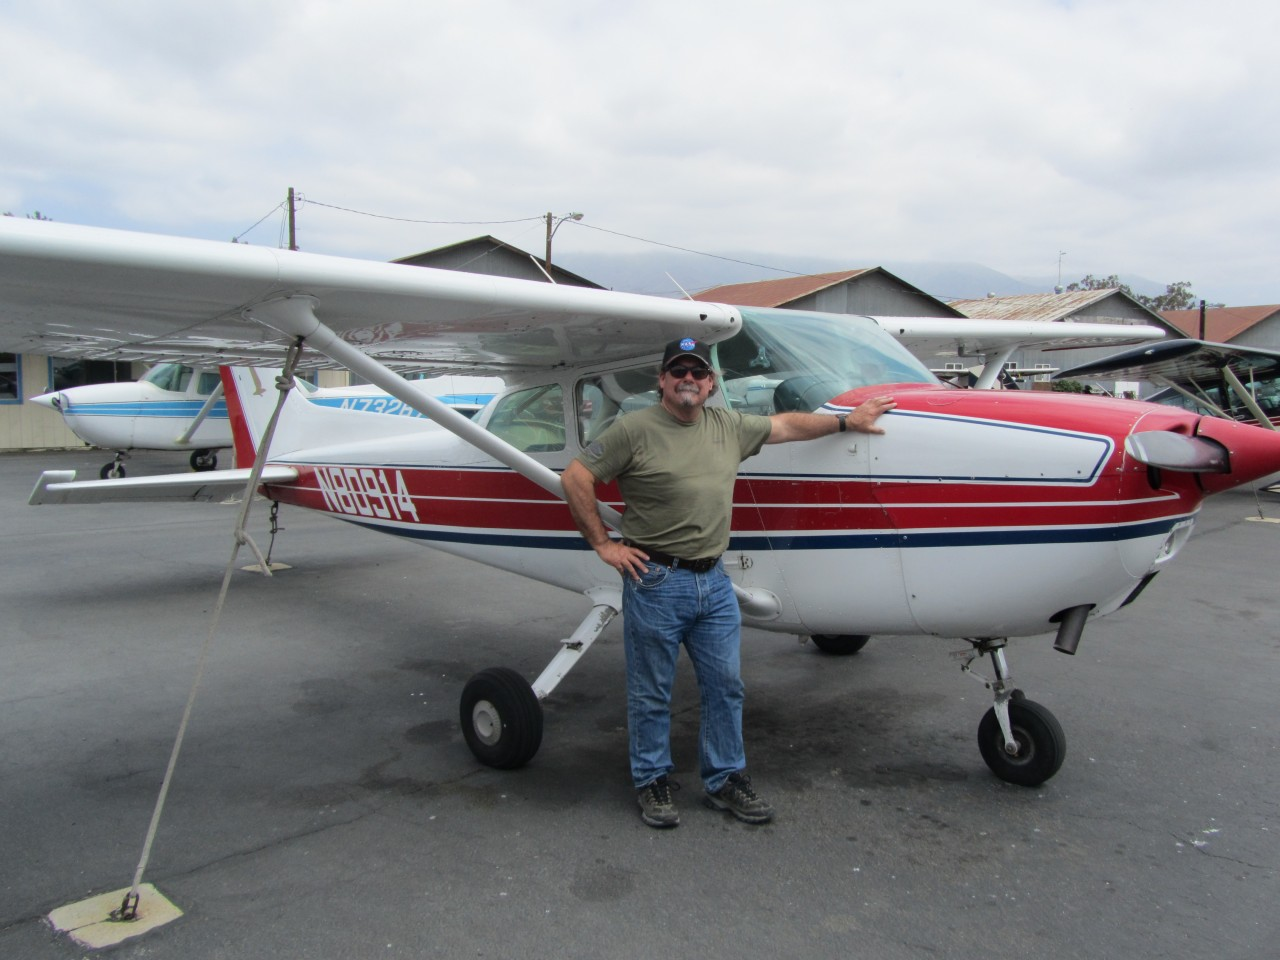 First Solo - Ron Ryan!